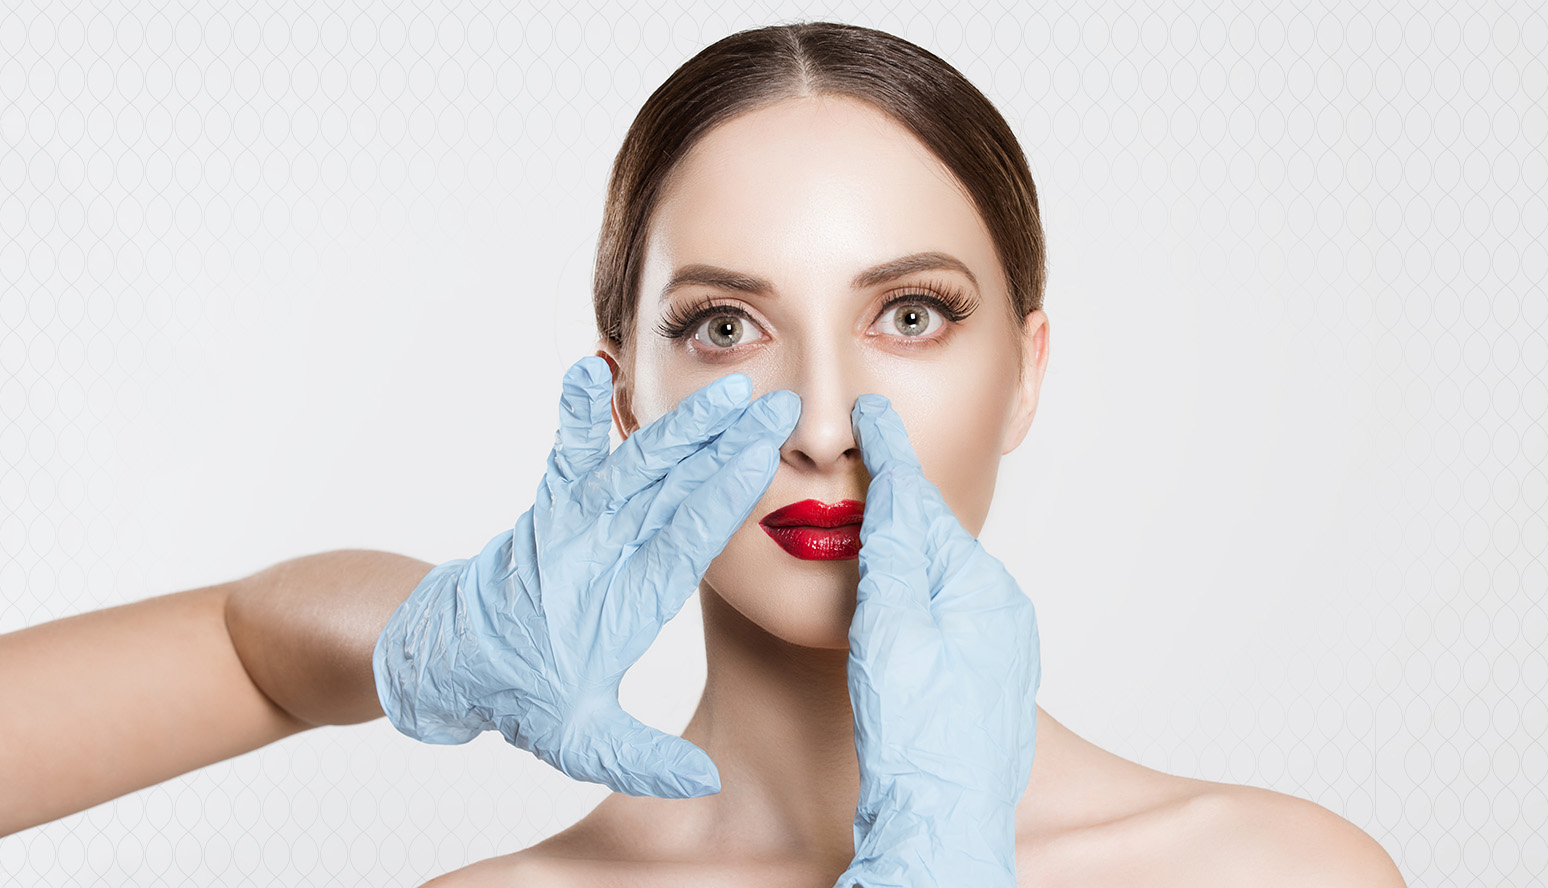 Reducing the nose with plastic surgery